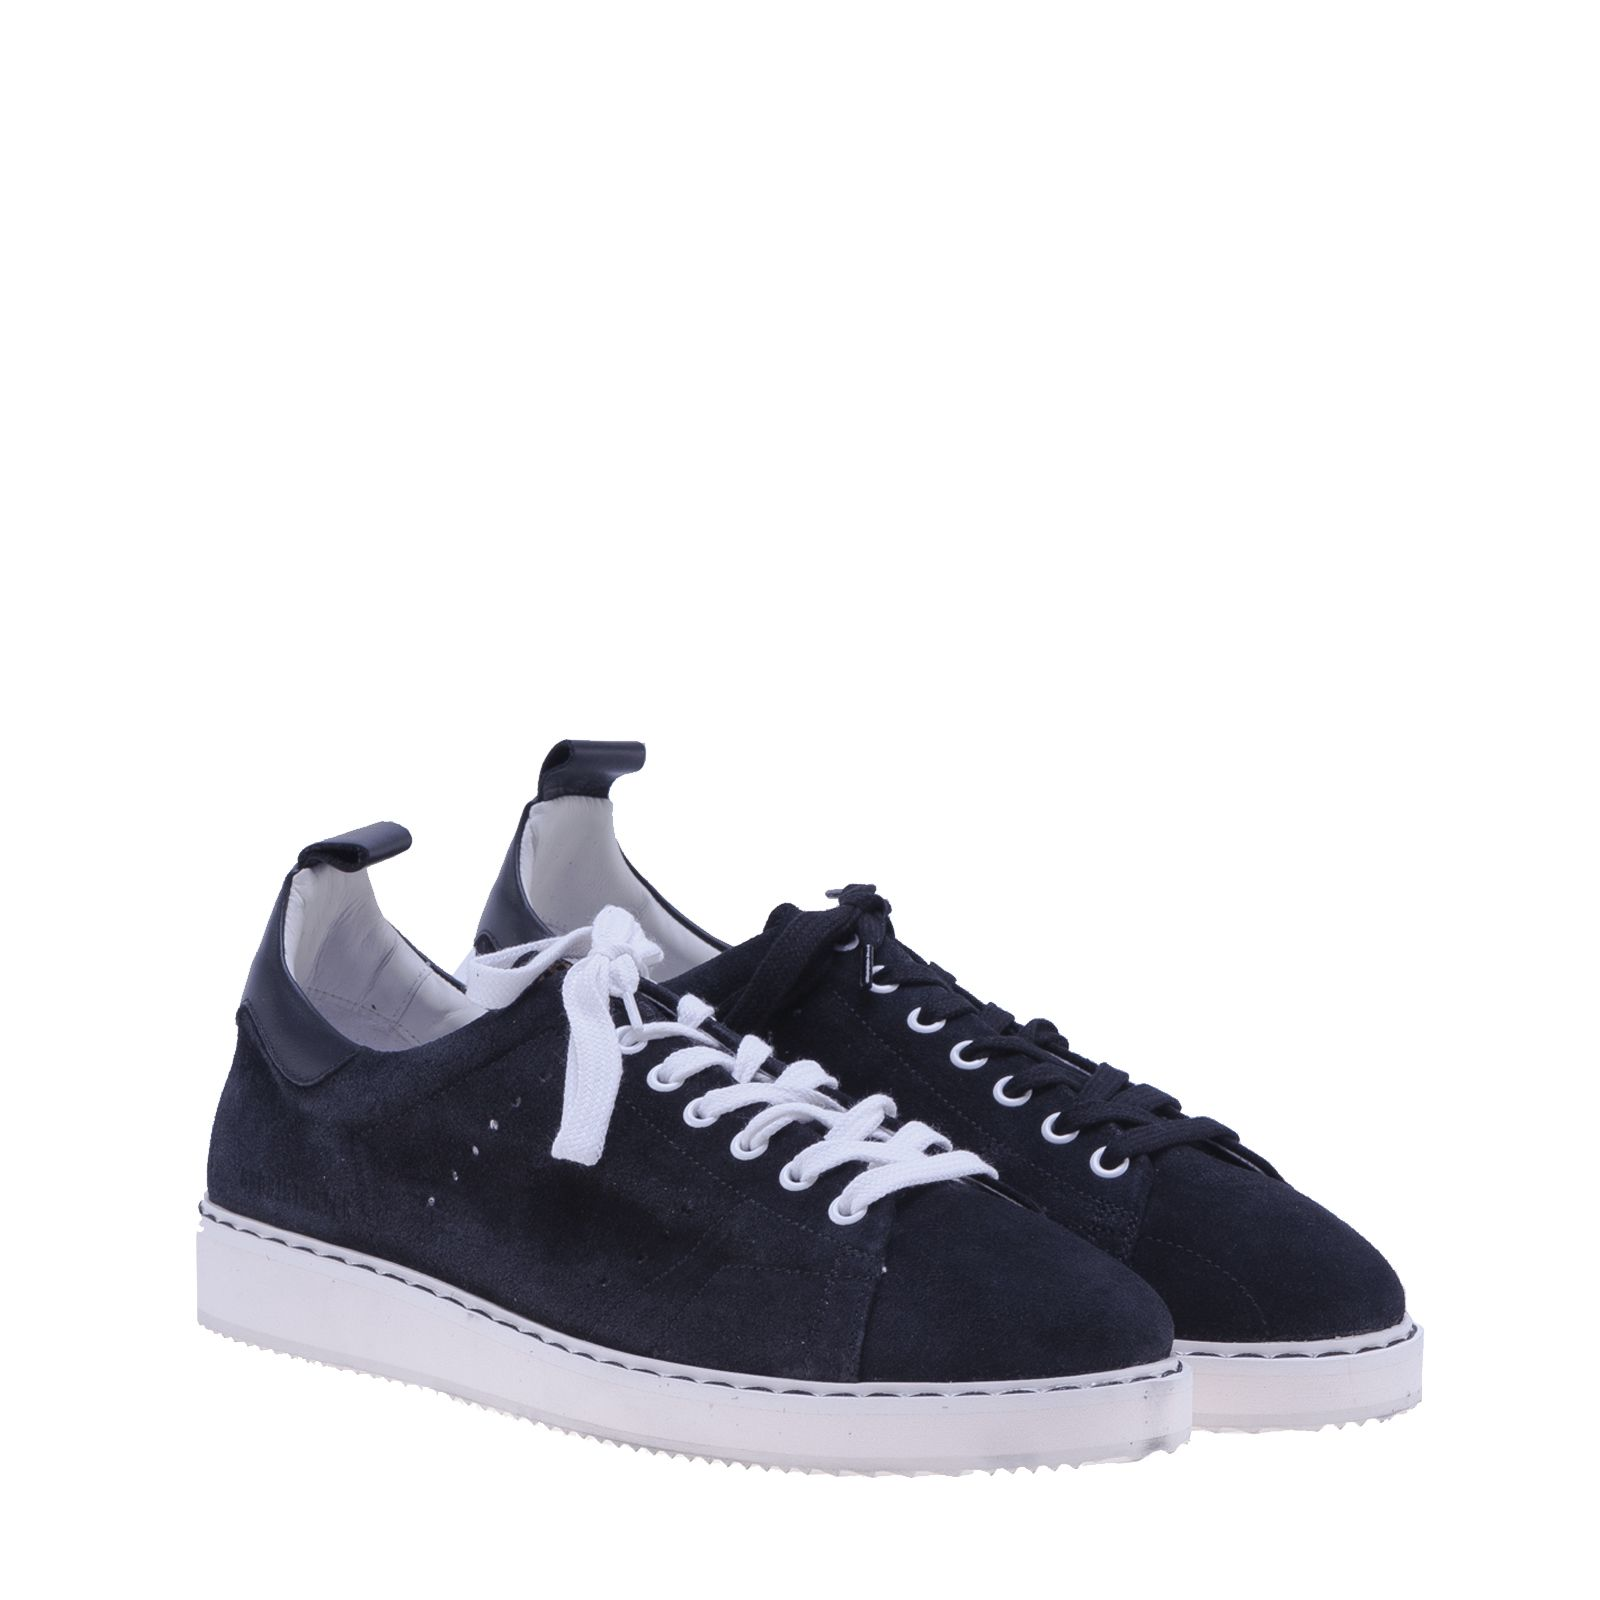 golden goose golden goose deluxe brand starter sneakers black men 39 s sneakers italist. Black Bedroom Furniture Sets. Home Design Ideas